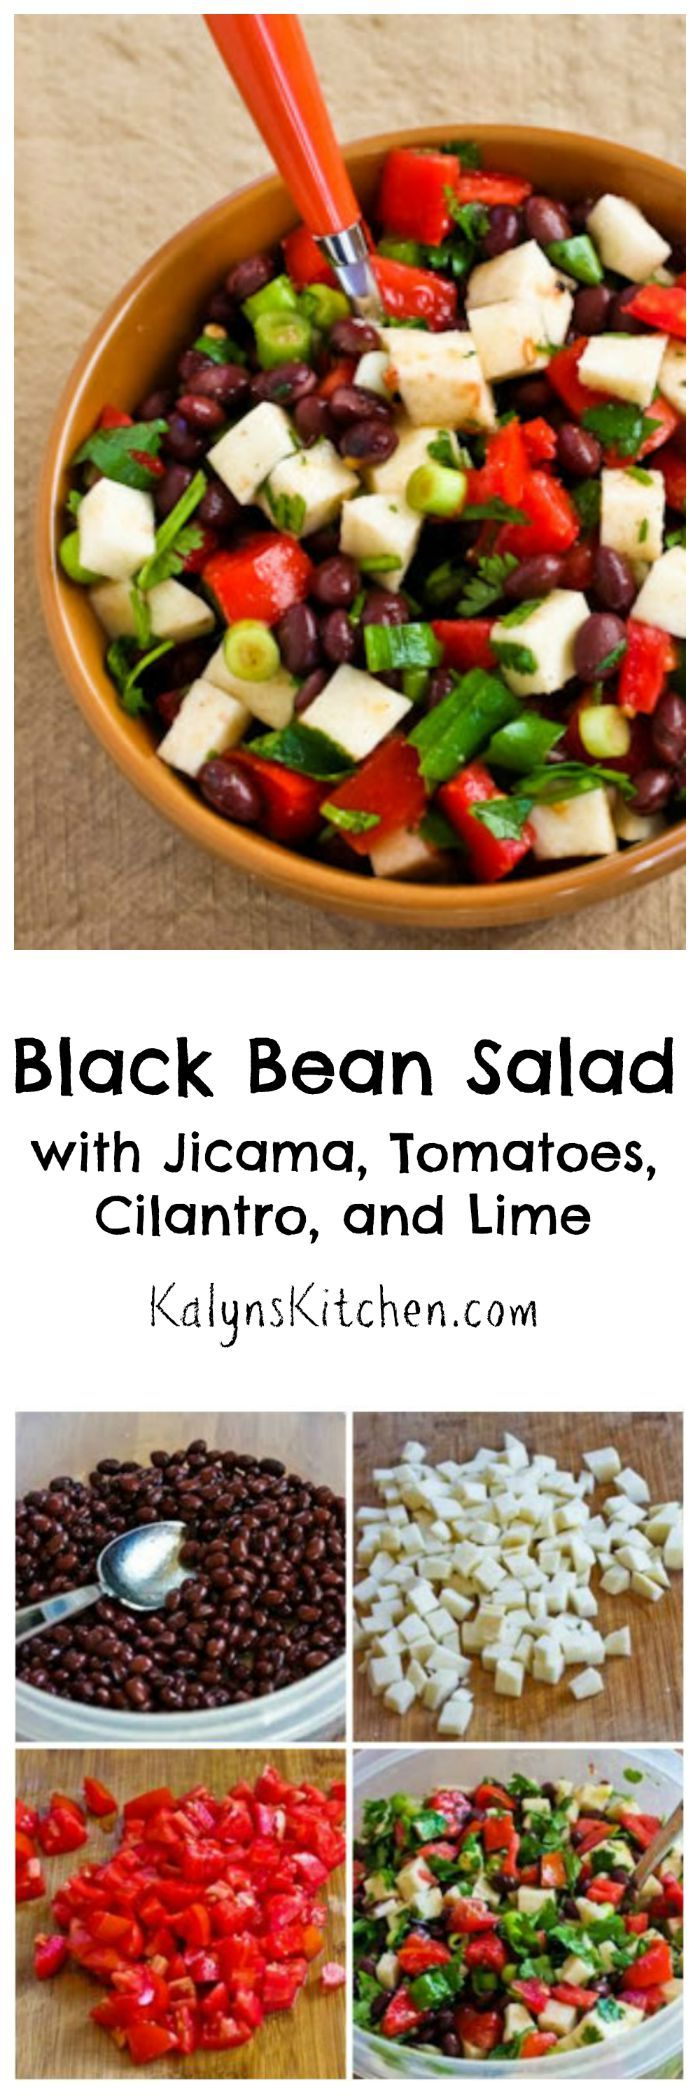 It's the ripe juicy summer tomatoes that make this Black Bean Salad with Jicama, Tomatoes, Cilantro, and Lime so perfect for summer parties, but truthfully I'd eat this salad any time of year if I can get good cherry tomatoes! If you're not familiar with jicama, it's a delicious low-carb vegetable often used in Mexican food that adds a delicious crunch. [from KalynsKitchen.com]